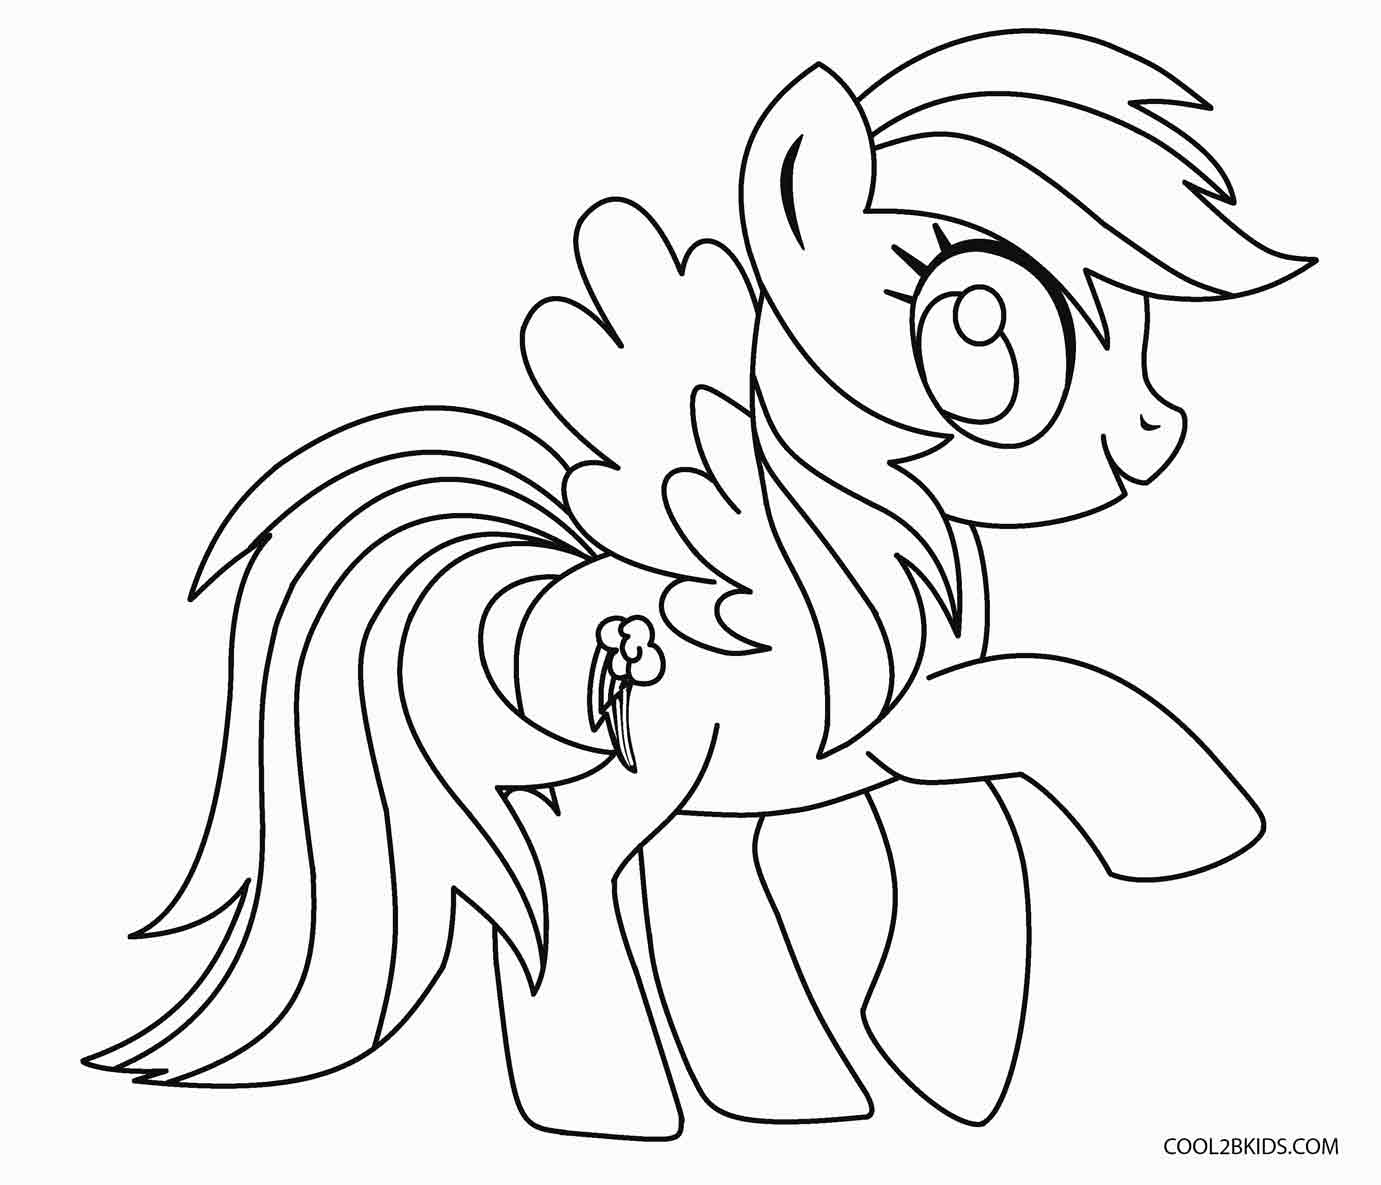 coloring pages of ponies my little pony the movie coloring pages to download and coloring ponies pages of